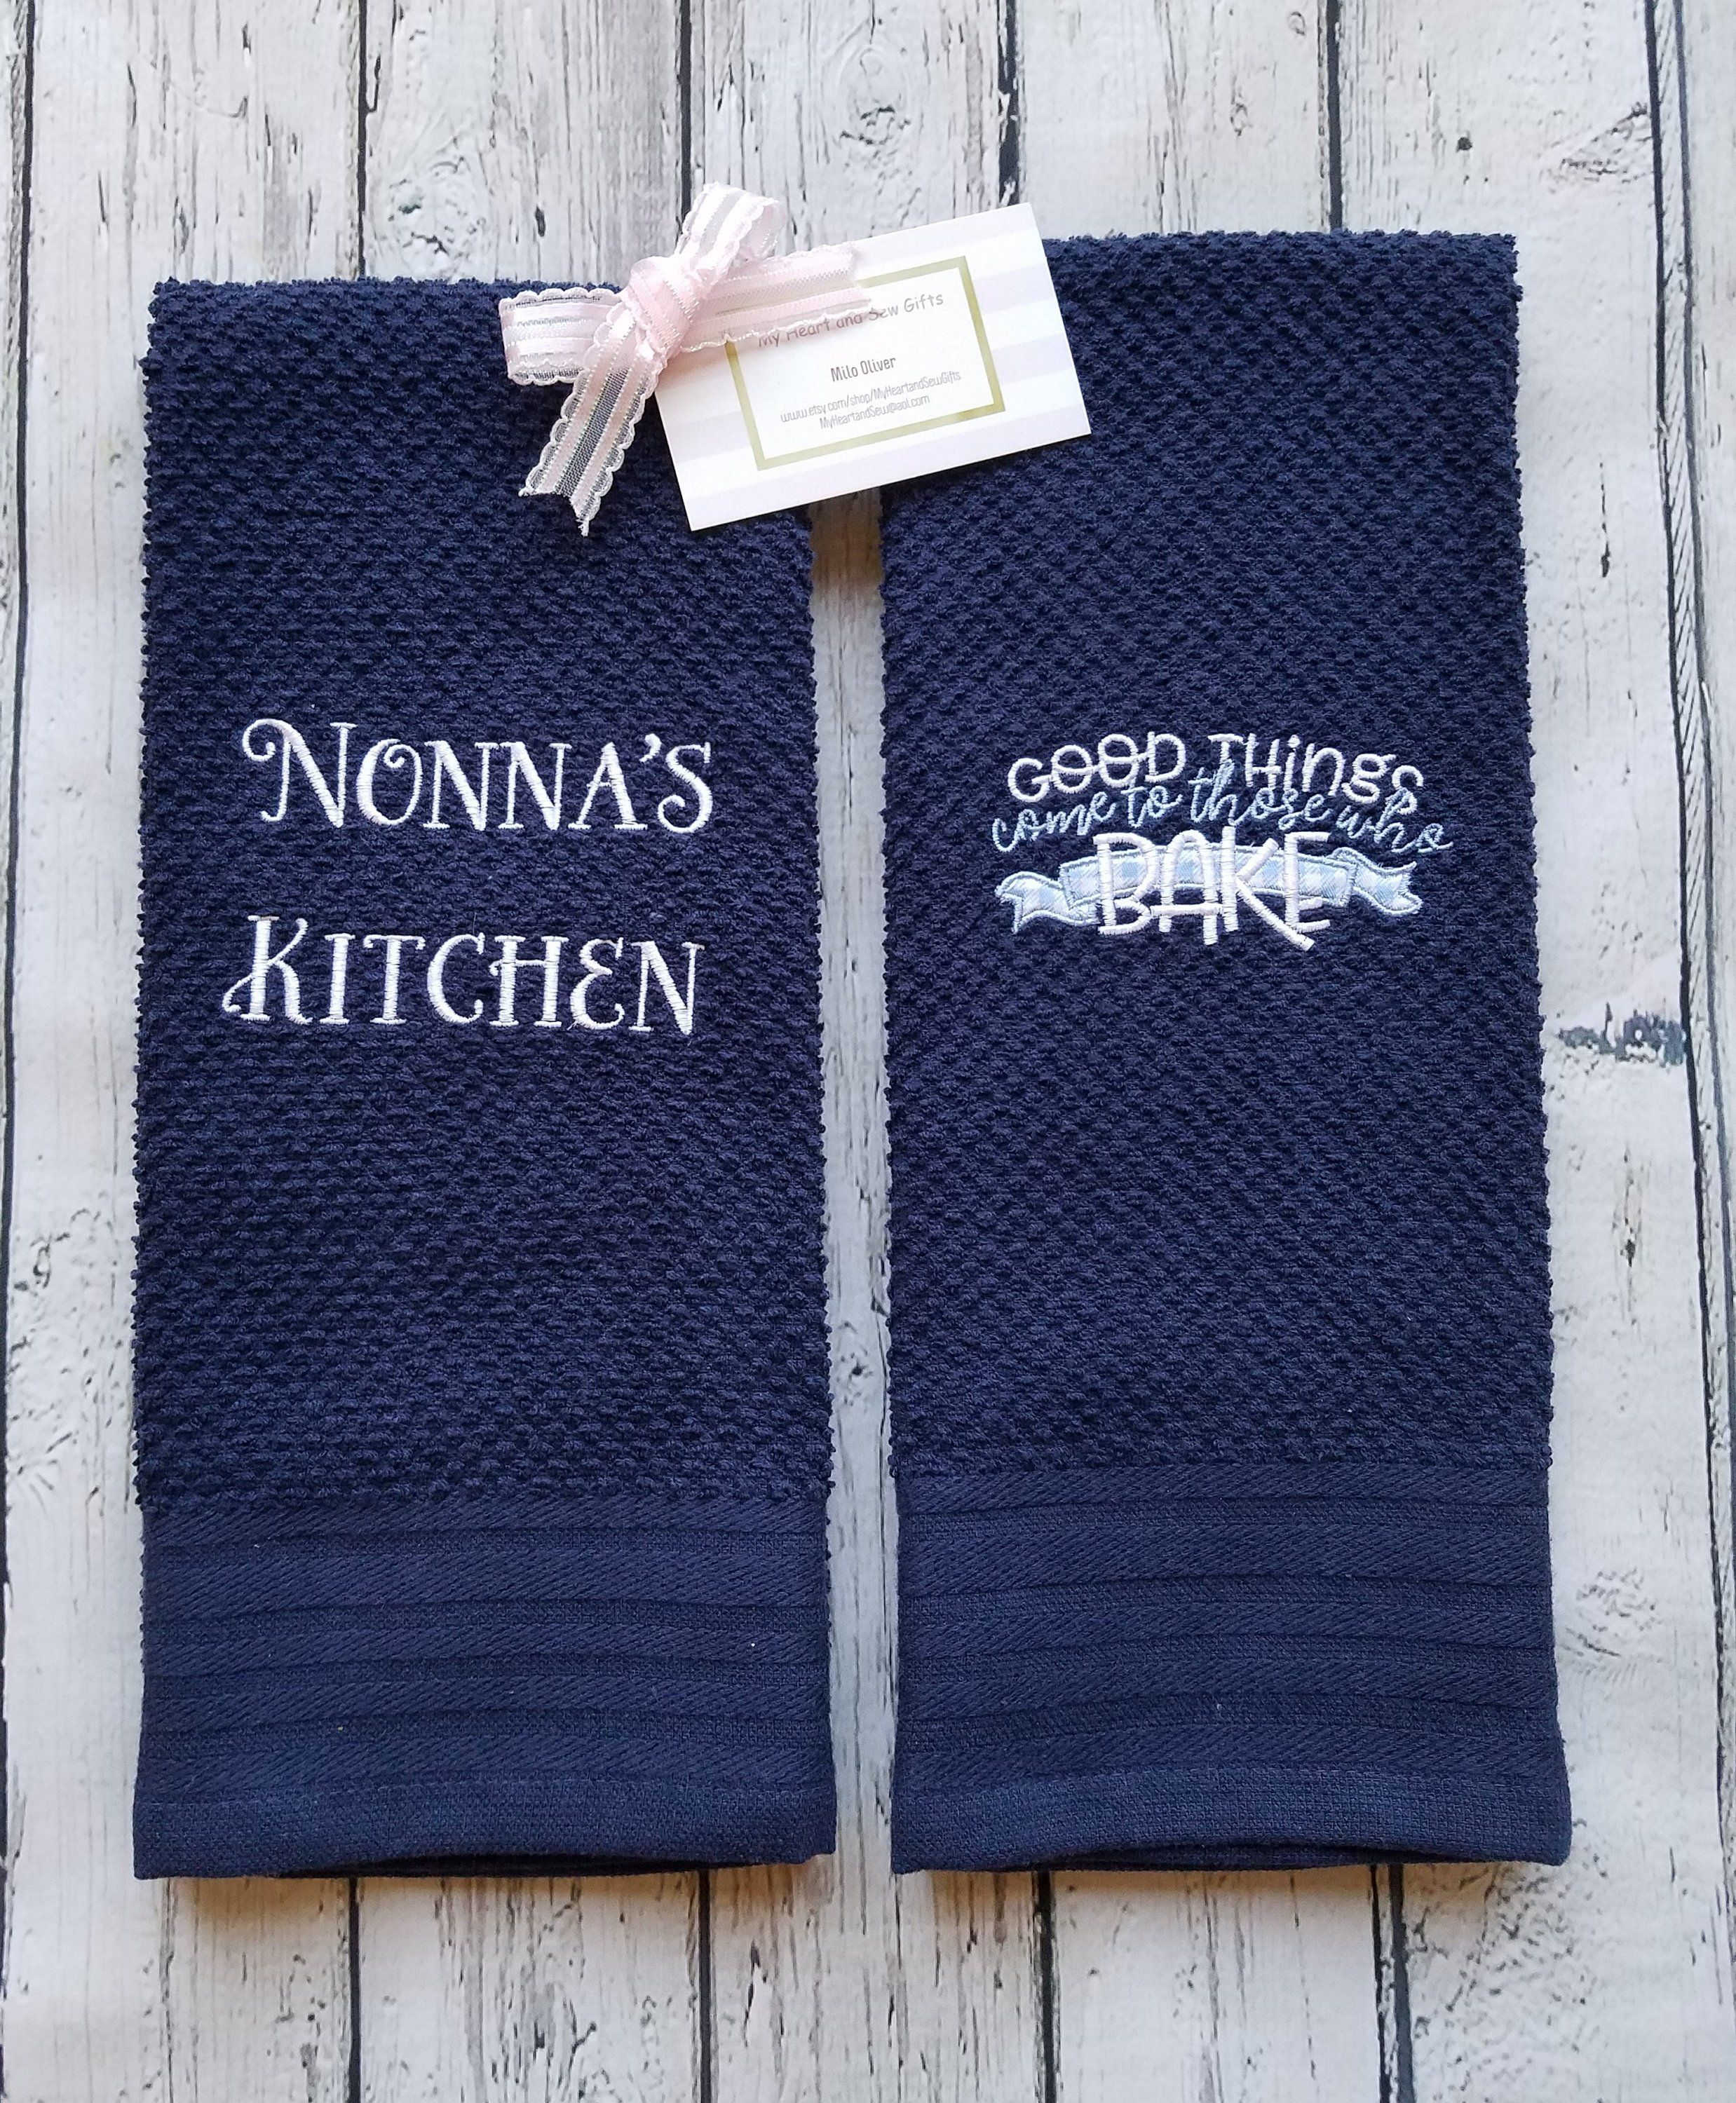 Matching Set Of Two Navy Blue Kitchen Towels Embroidered With Good Things Come To Those Who Bake Personalized Towel